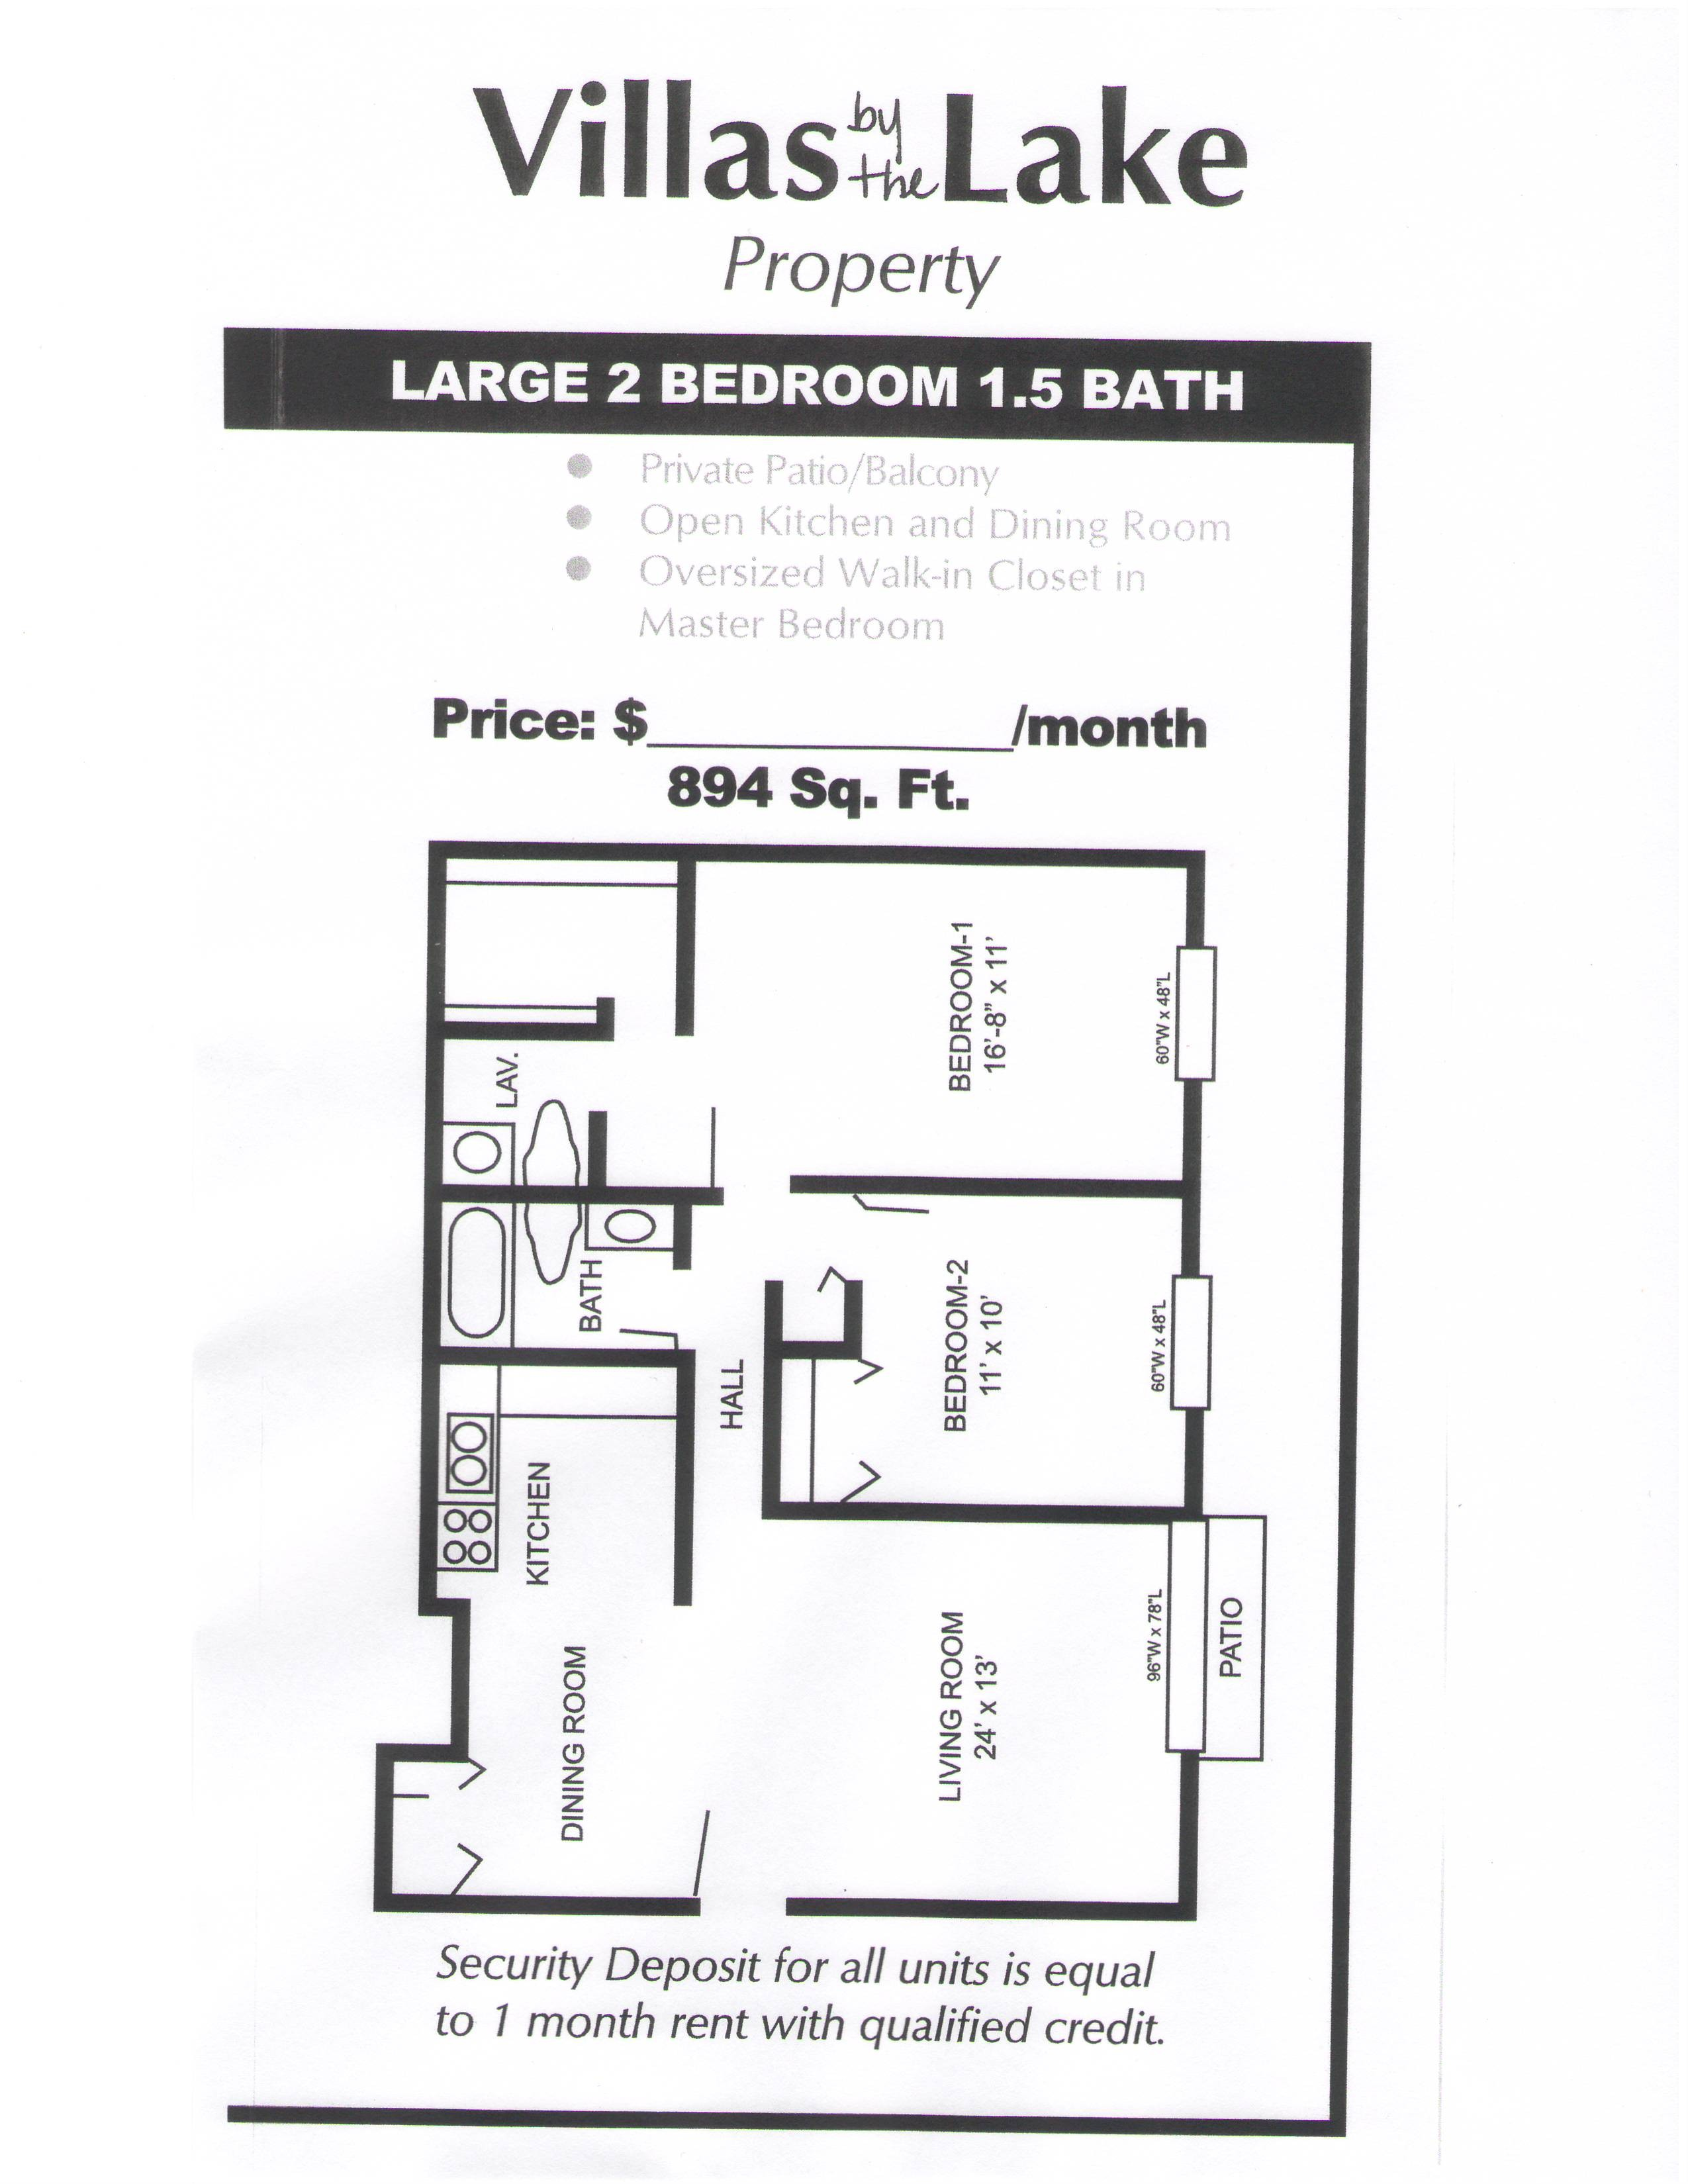 2 Bedroom 15 Bathrooms Large Floorplan Floor Plan Pace Realty